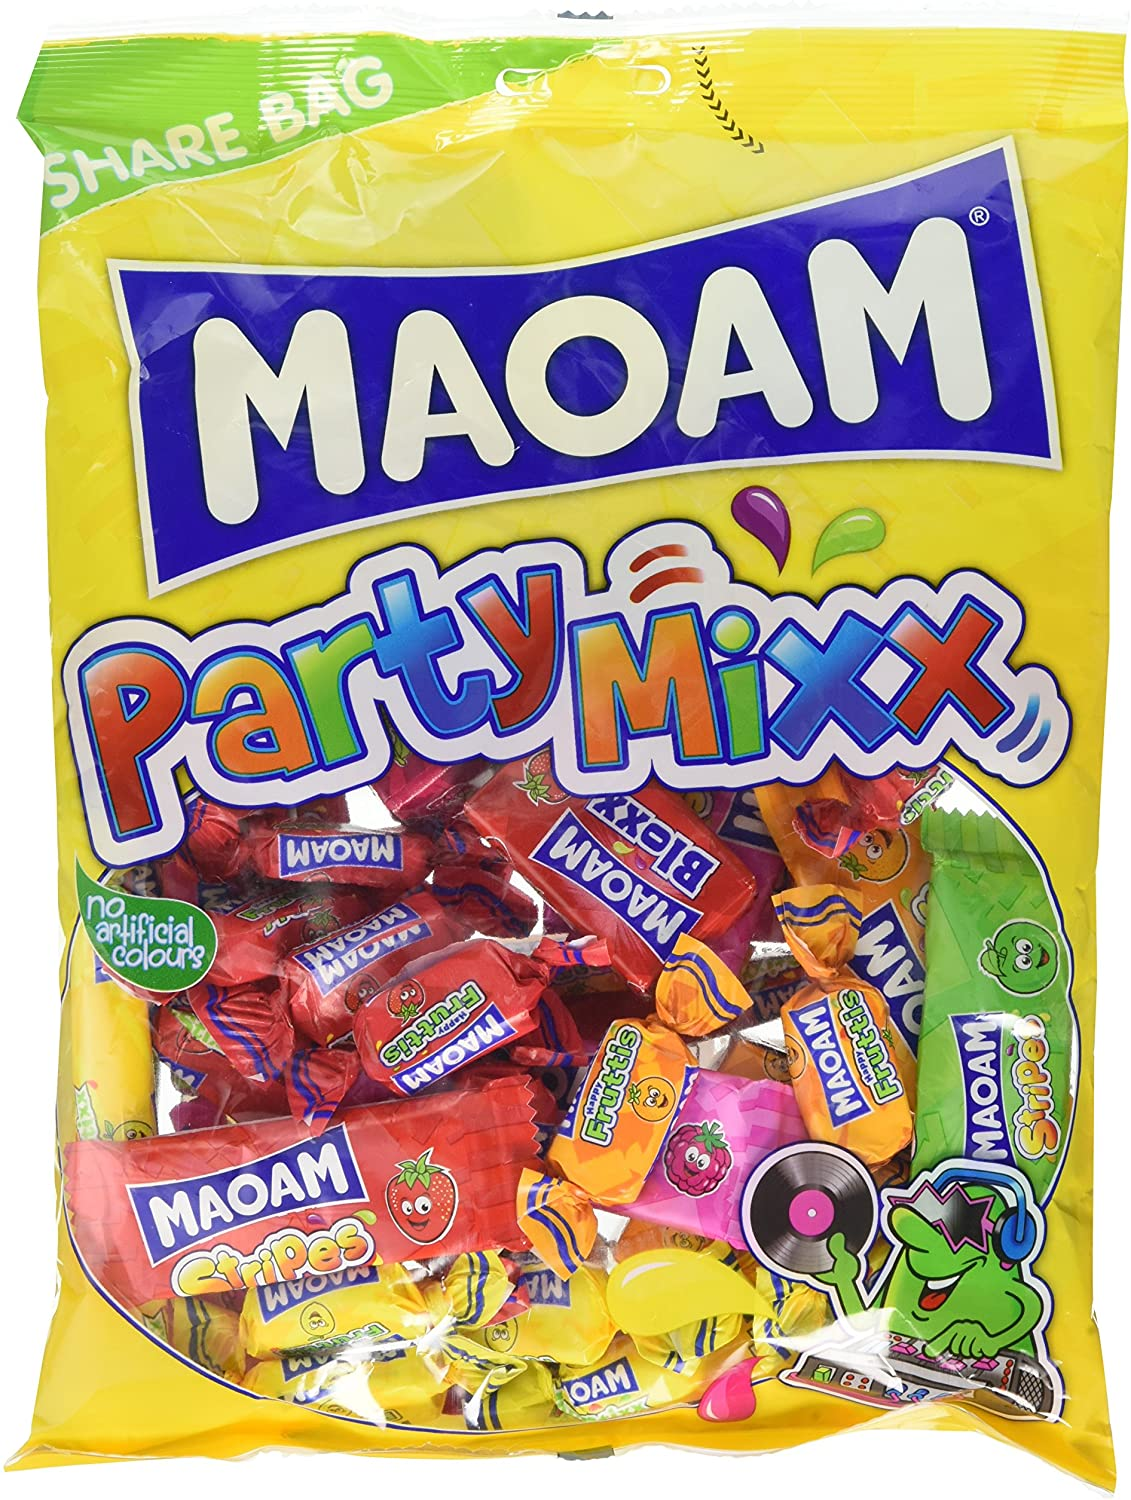 Haribo Maoam Party Mix, 350g (Pack of 14)